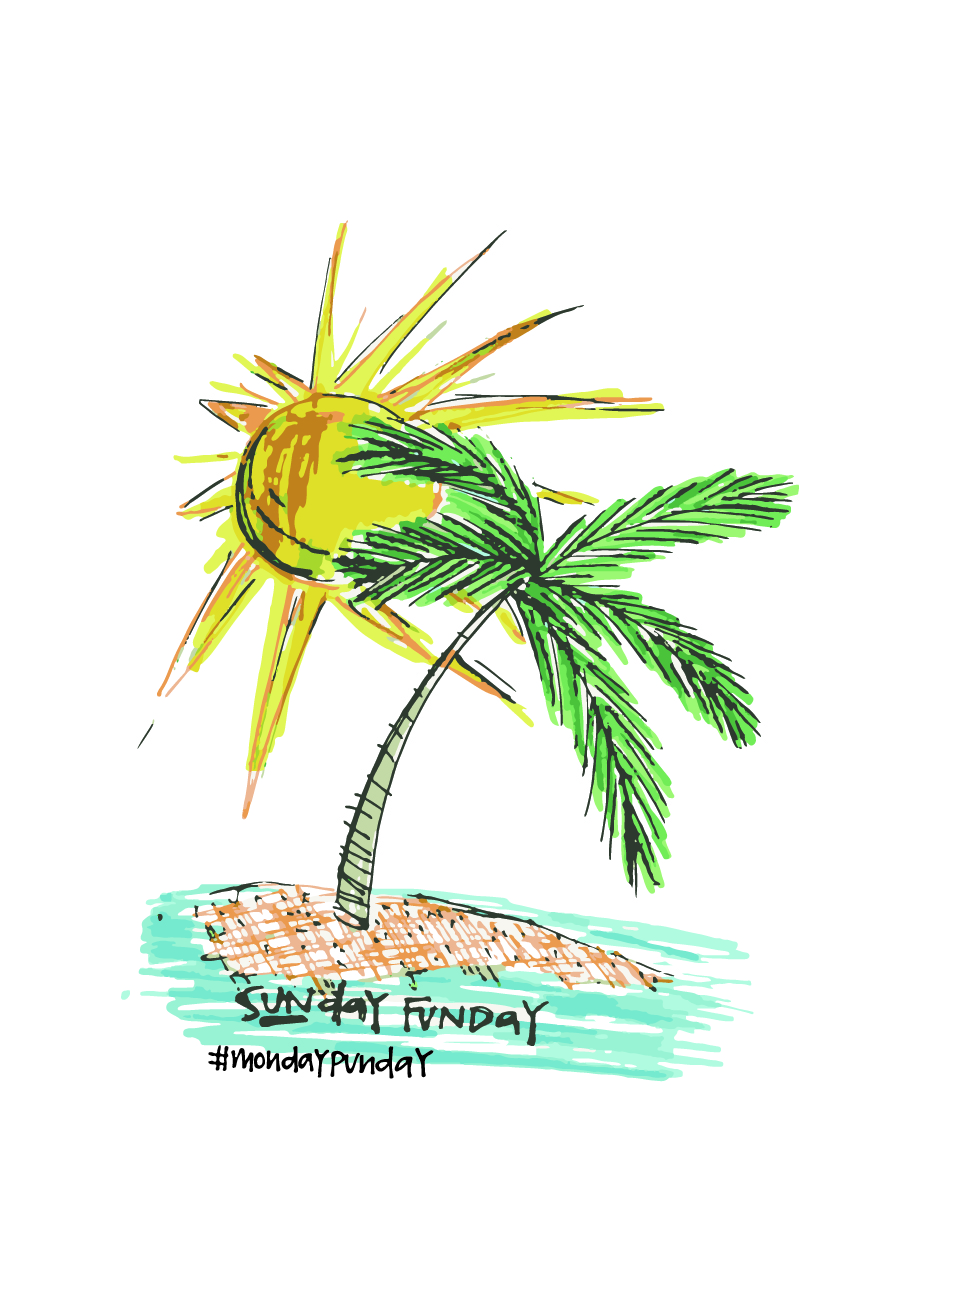 Because every day in Florida is a SUN day. (even #mondaypunday)